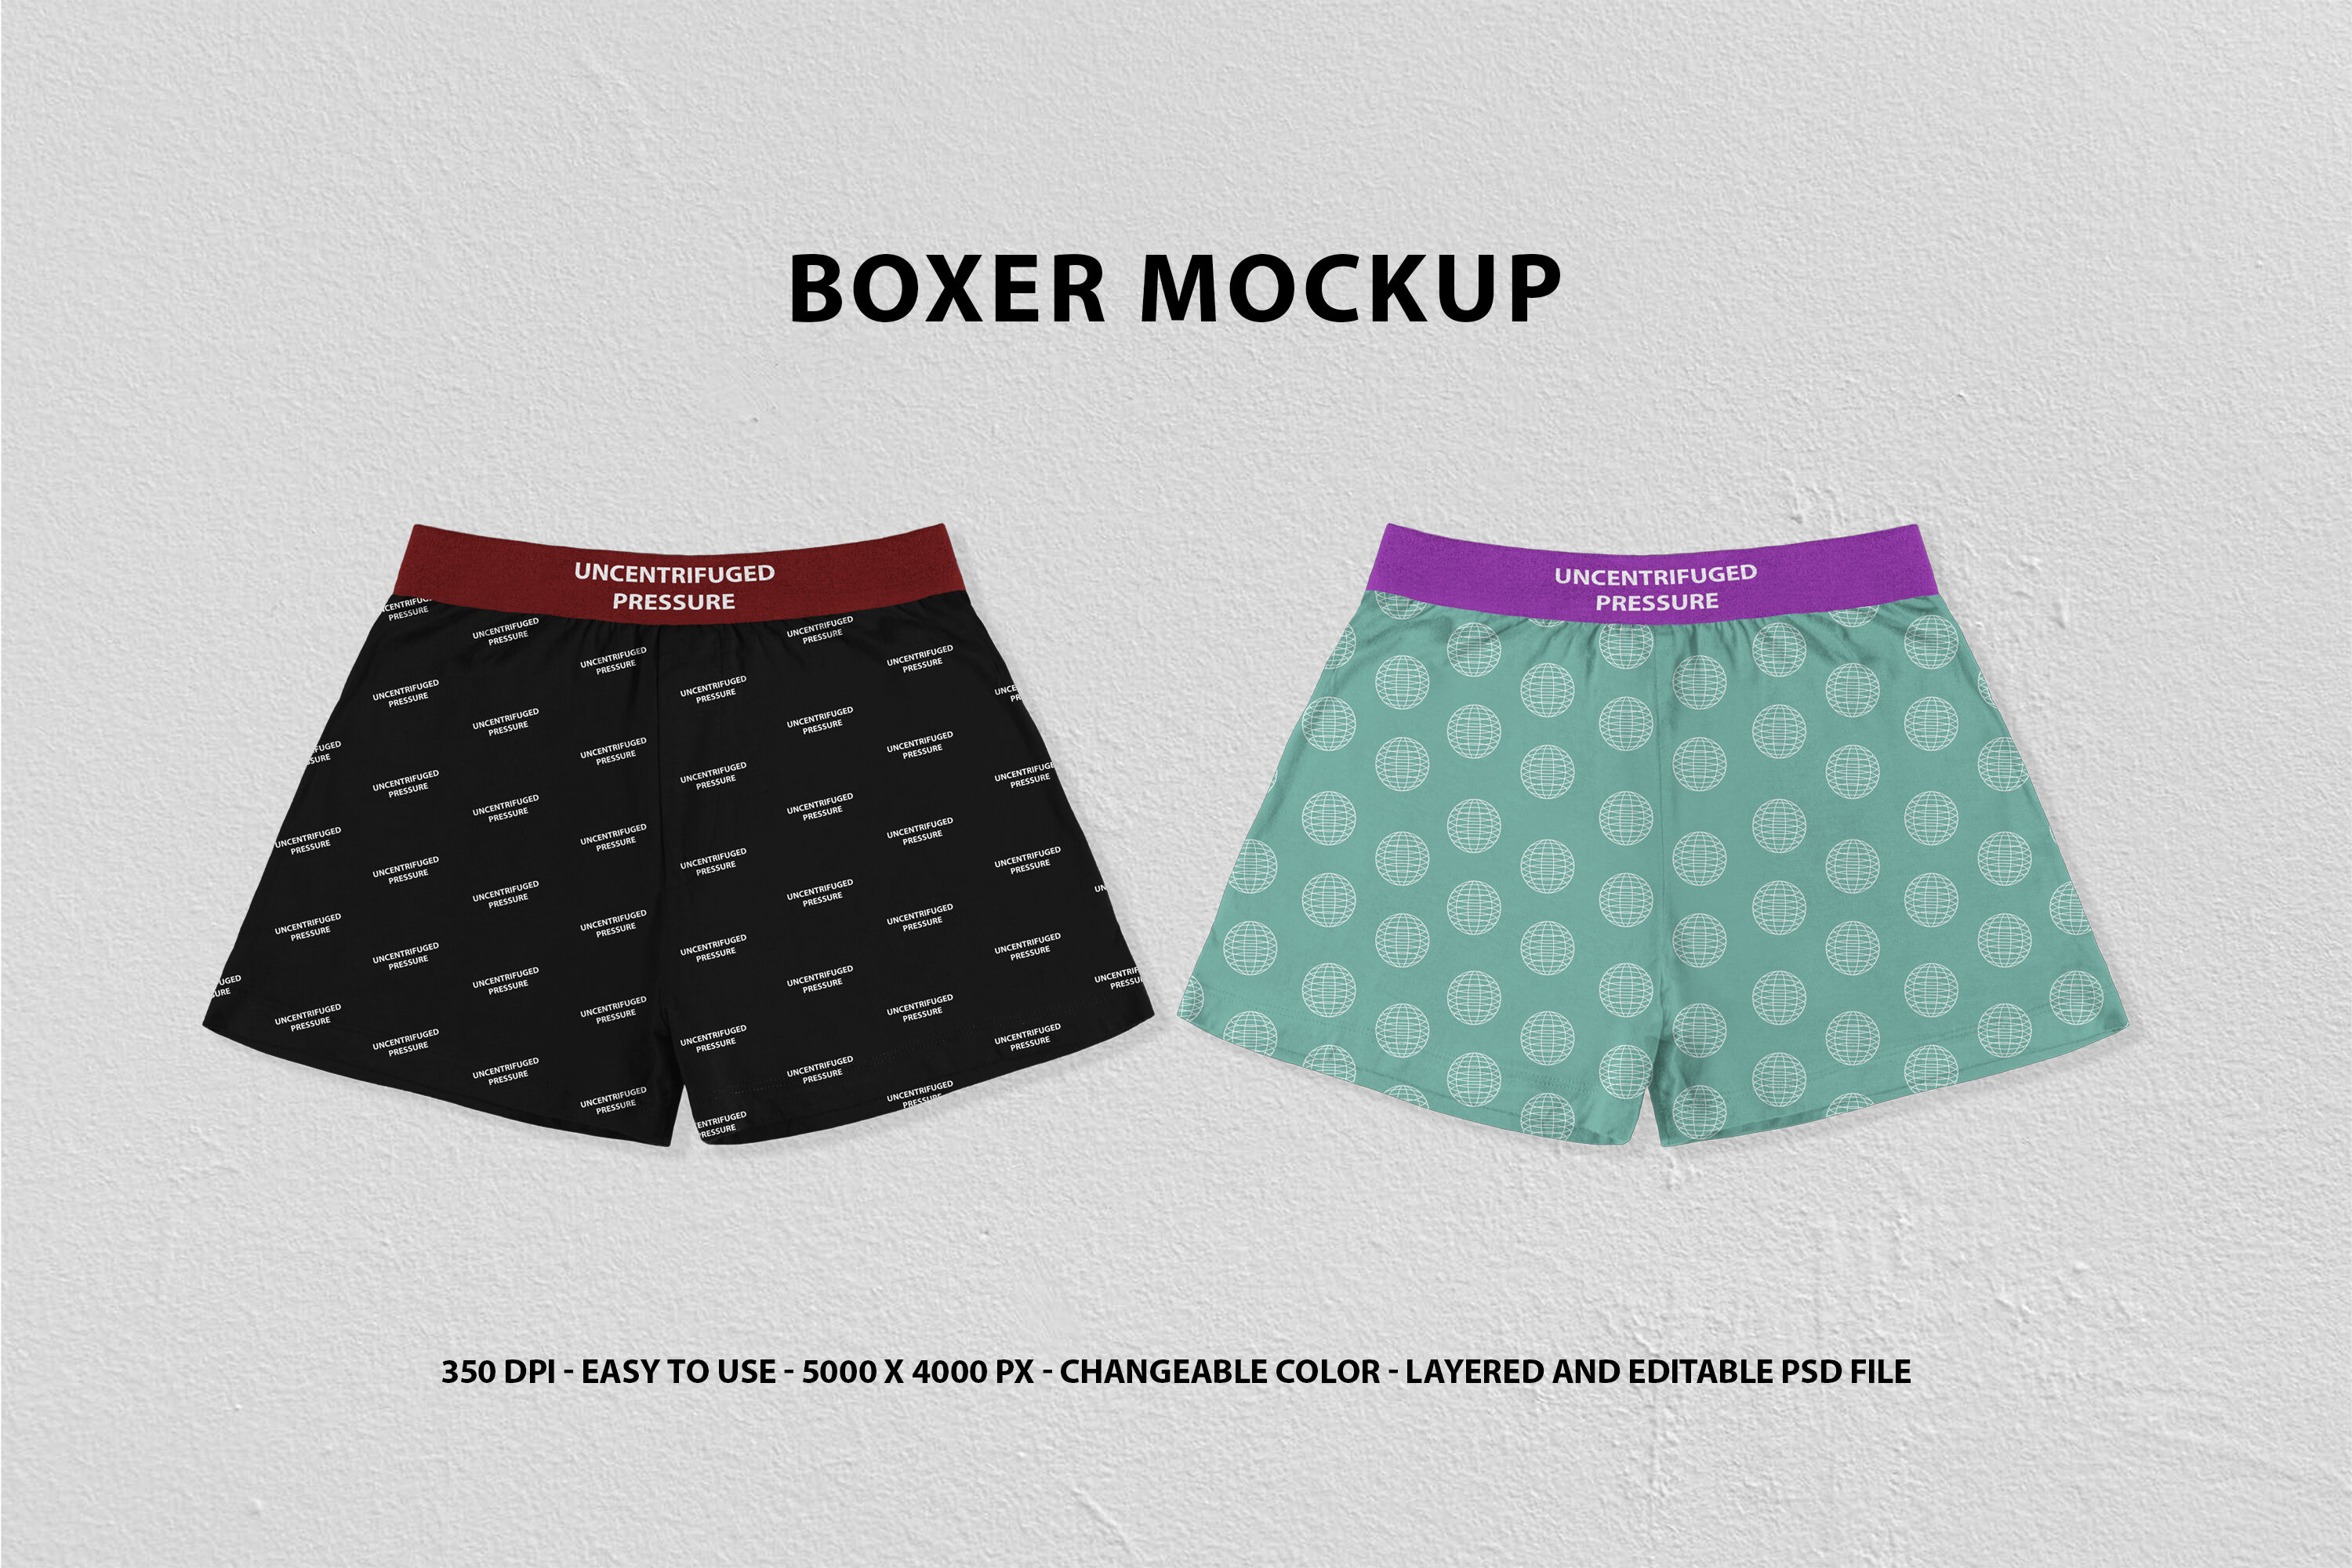 Download Boxers Mockup Free Yellowimages